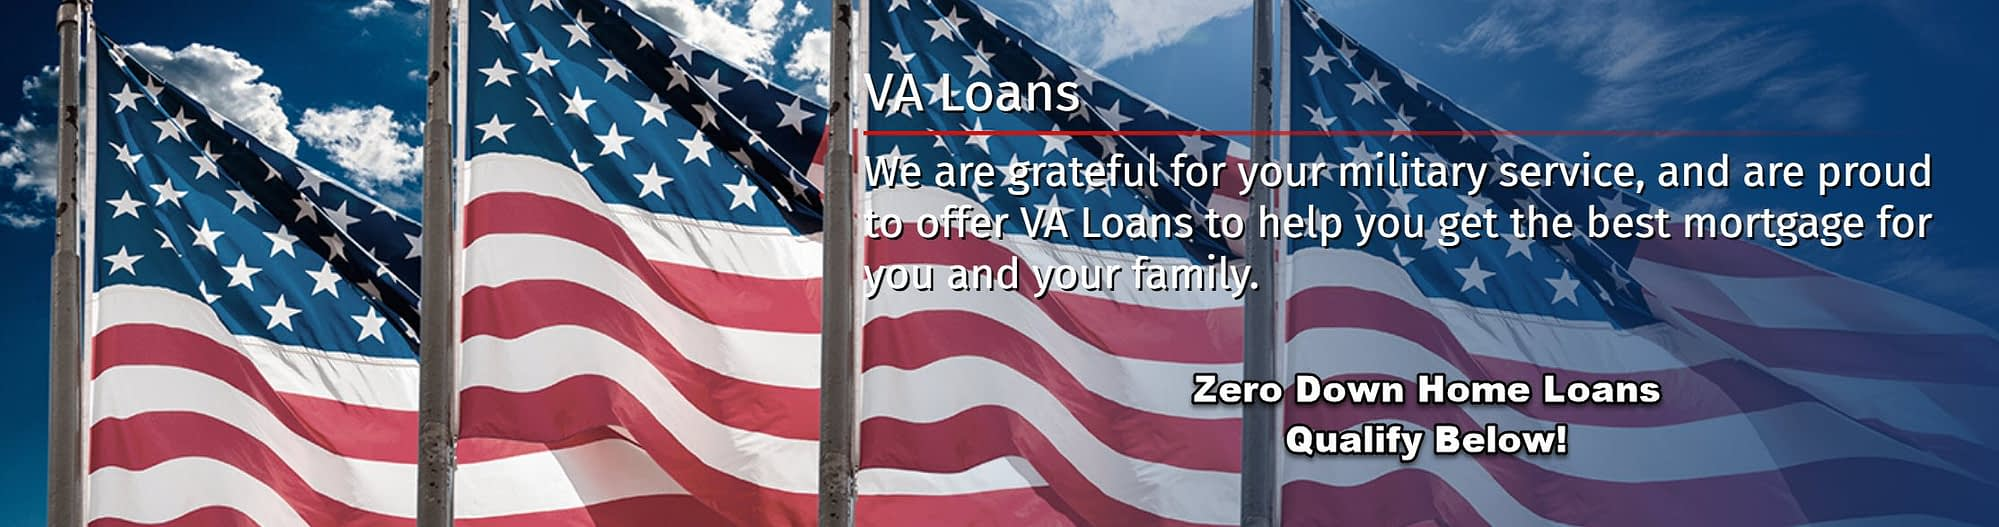 va loan zero down